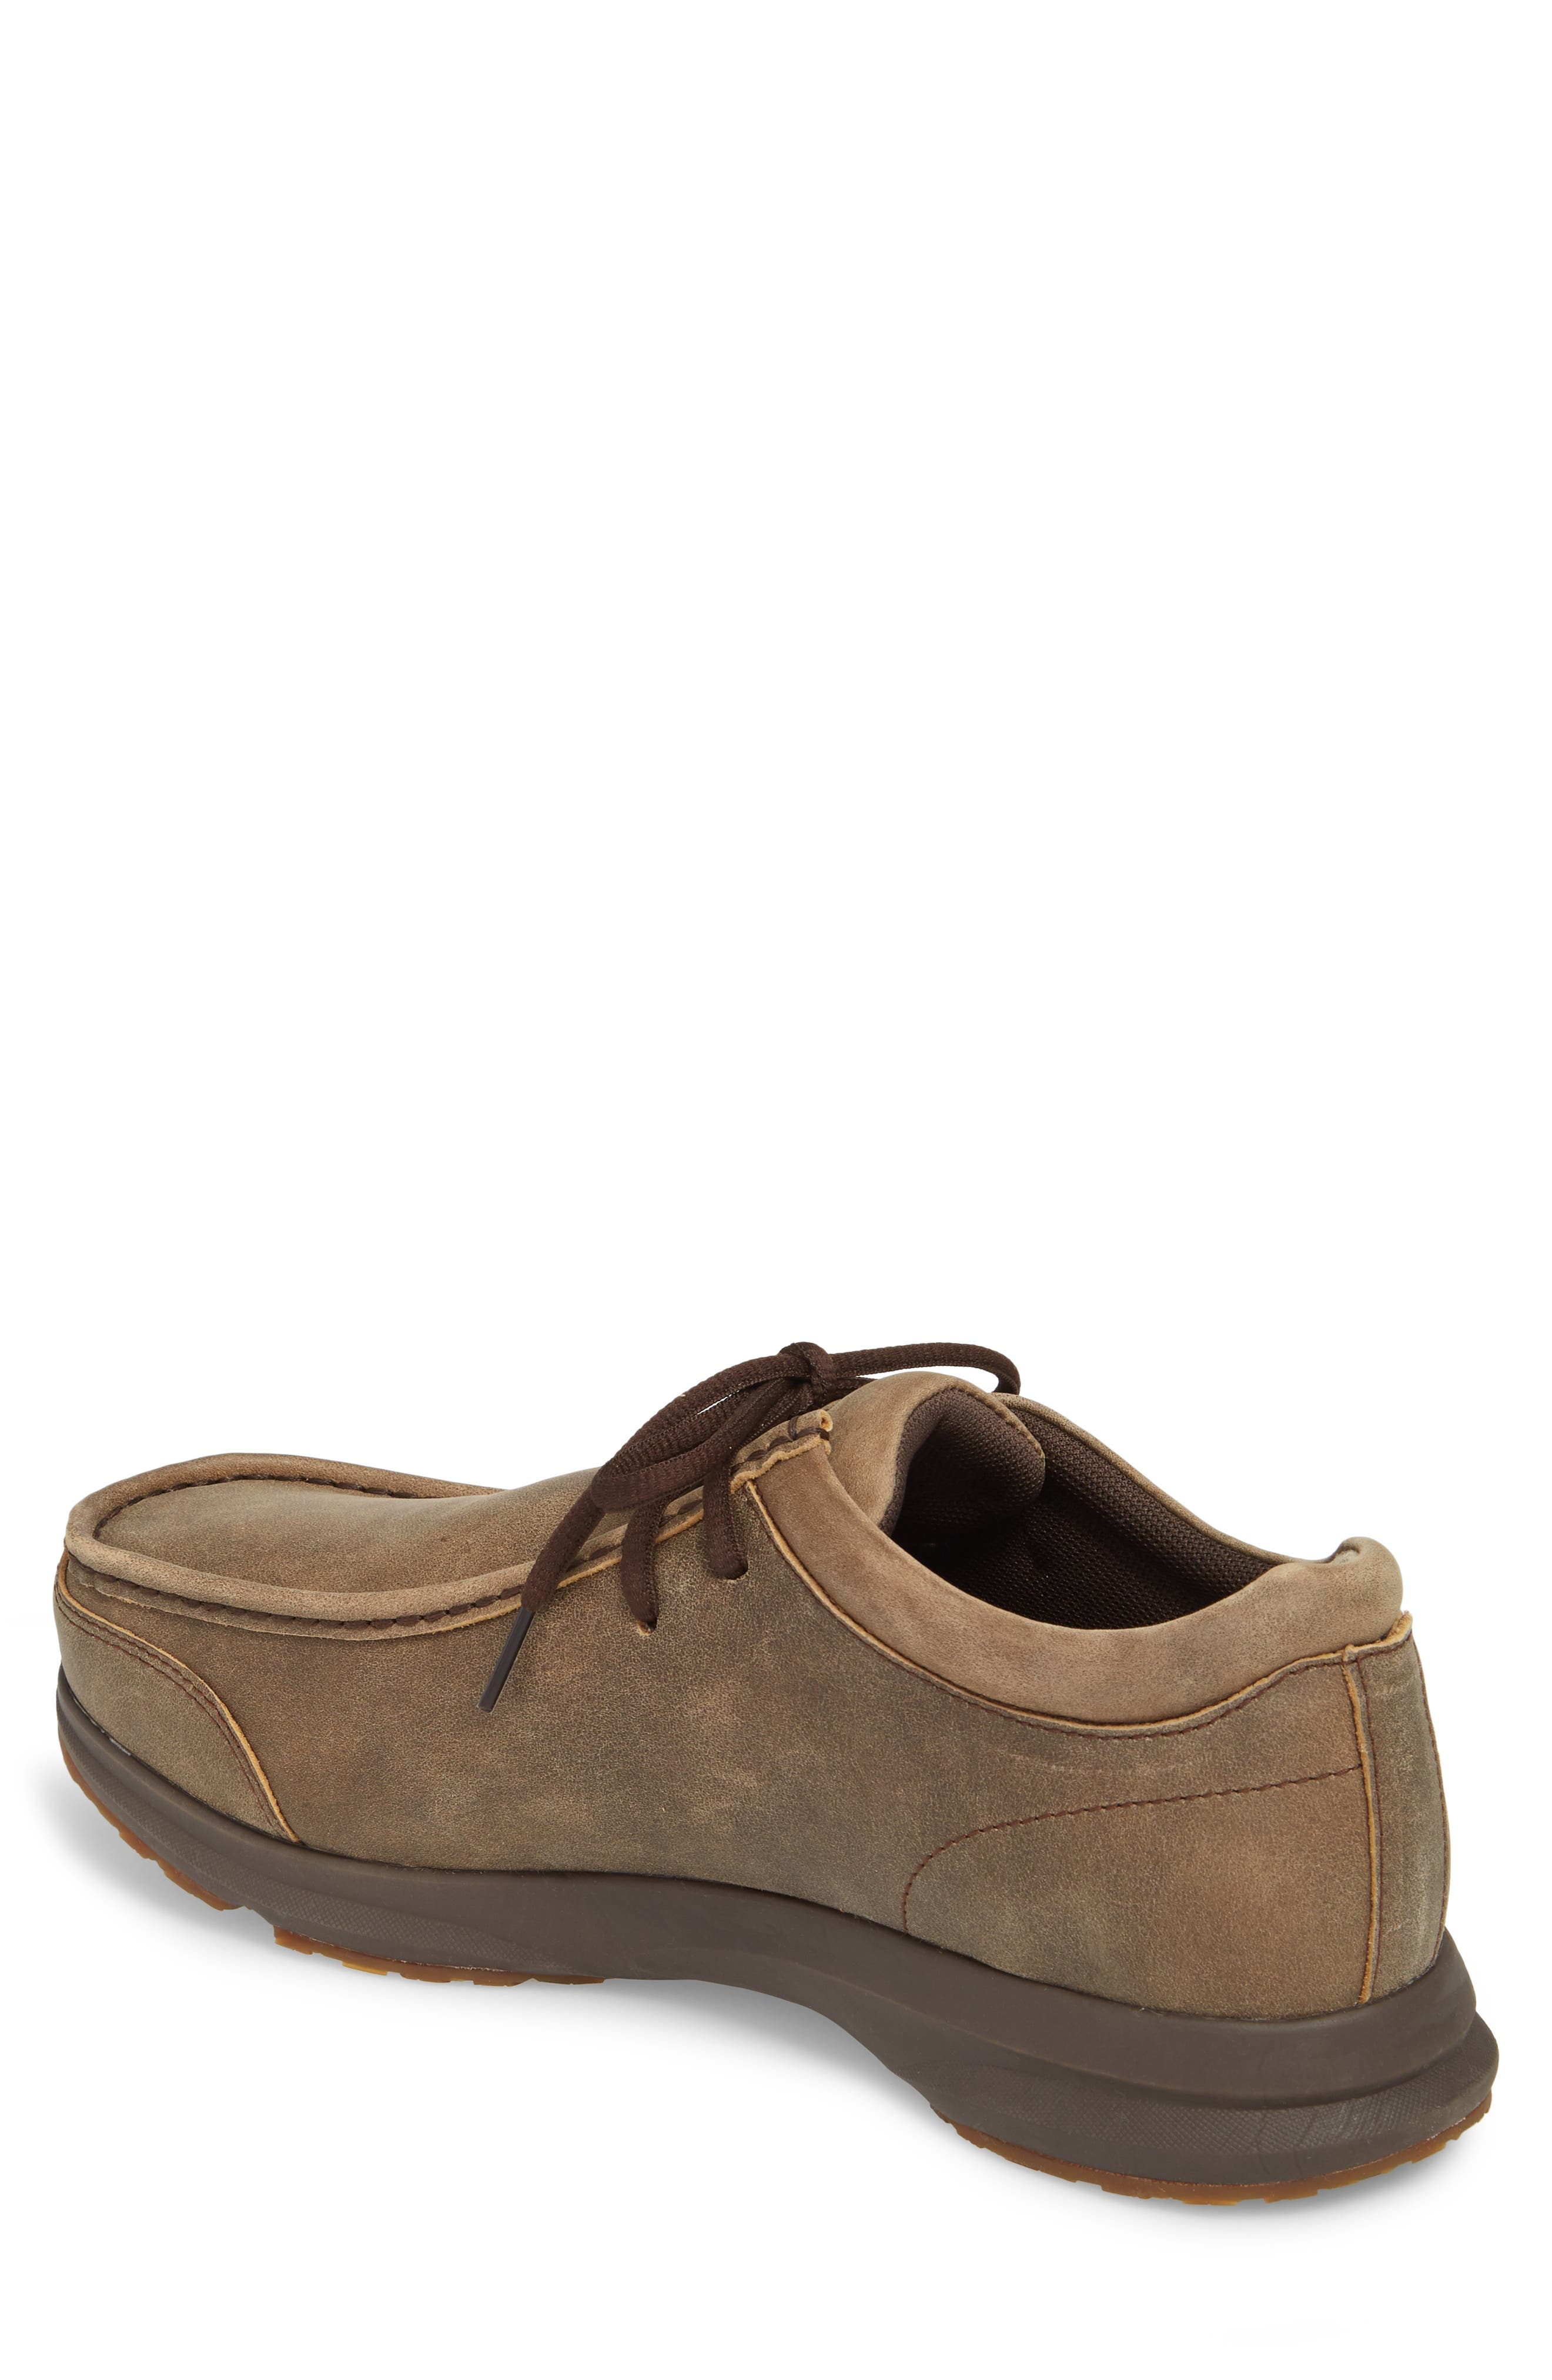 Spitfire Moc Toe Lace-Up,                             Alternate thumbnail 2, color,                             BROWN LEATHER